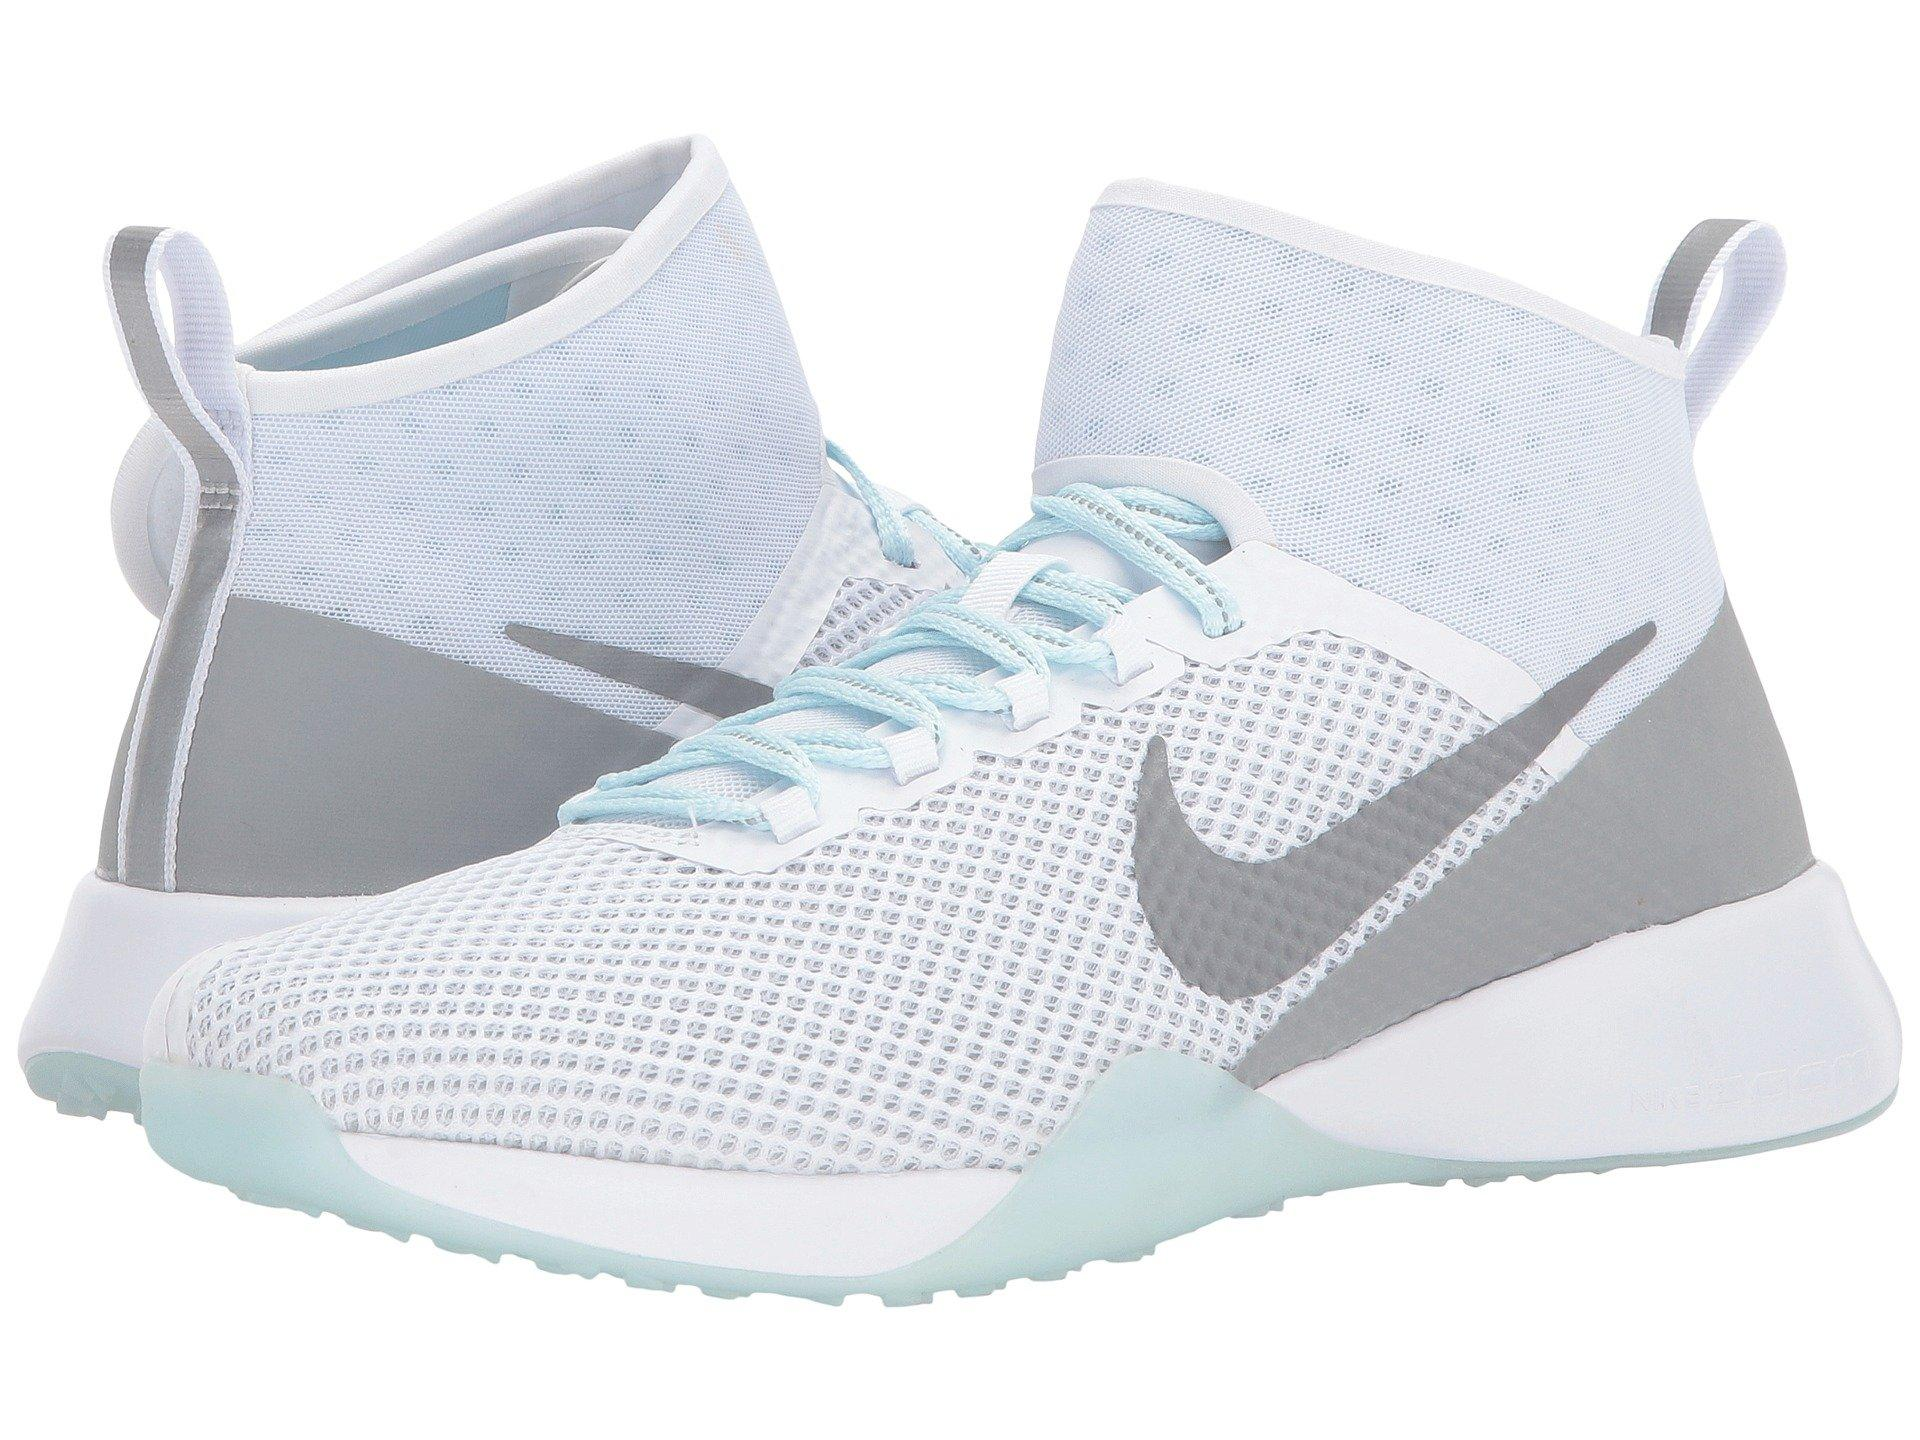 02a8ac484f27 Nike Air Zoom Strong 2 Reflect Training In White Reflect Silver Glacier Blue